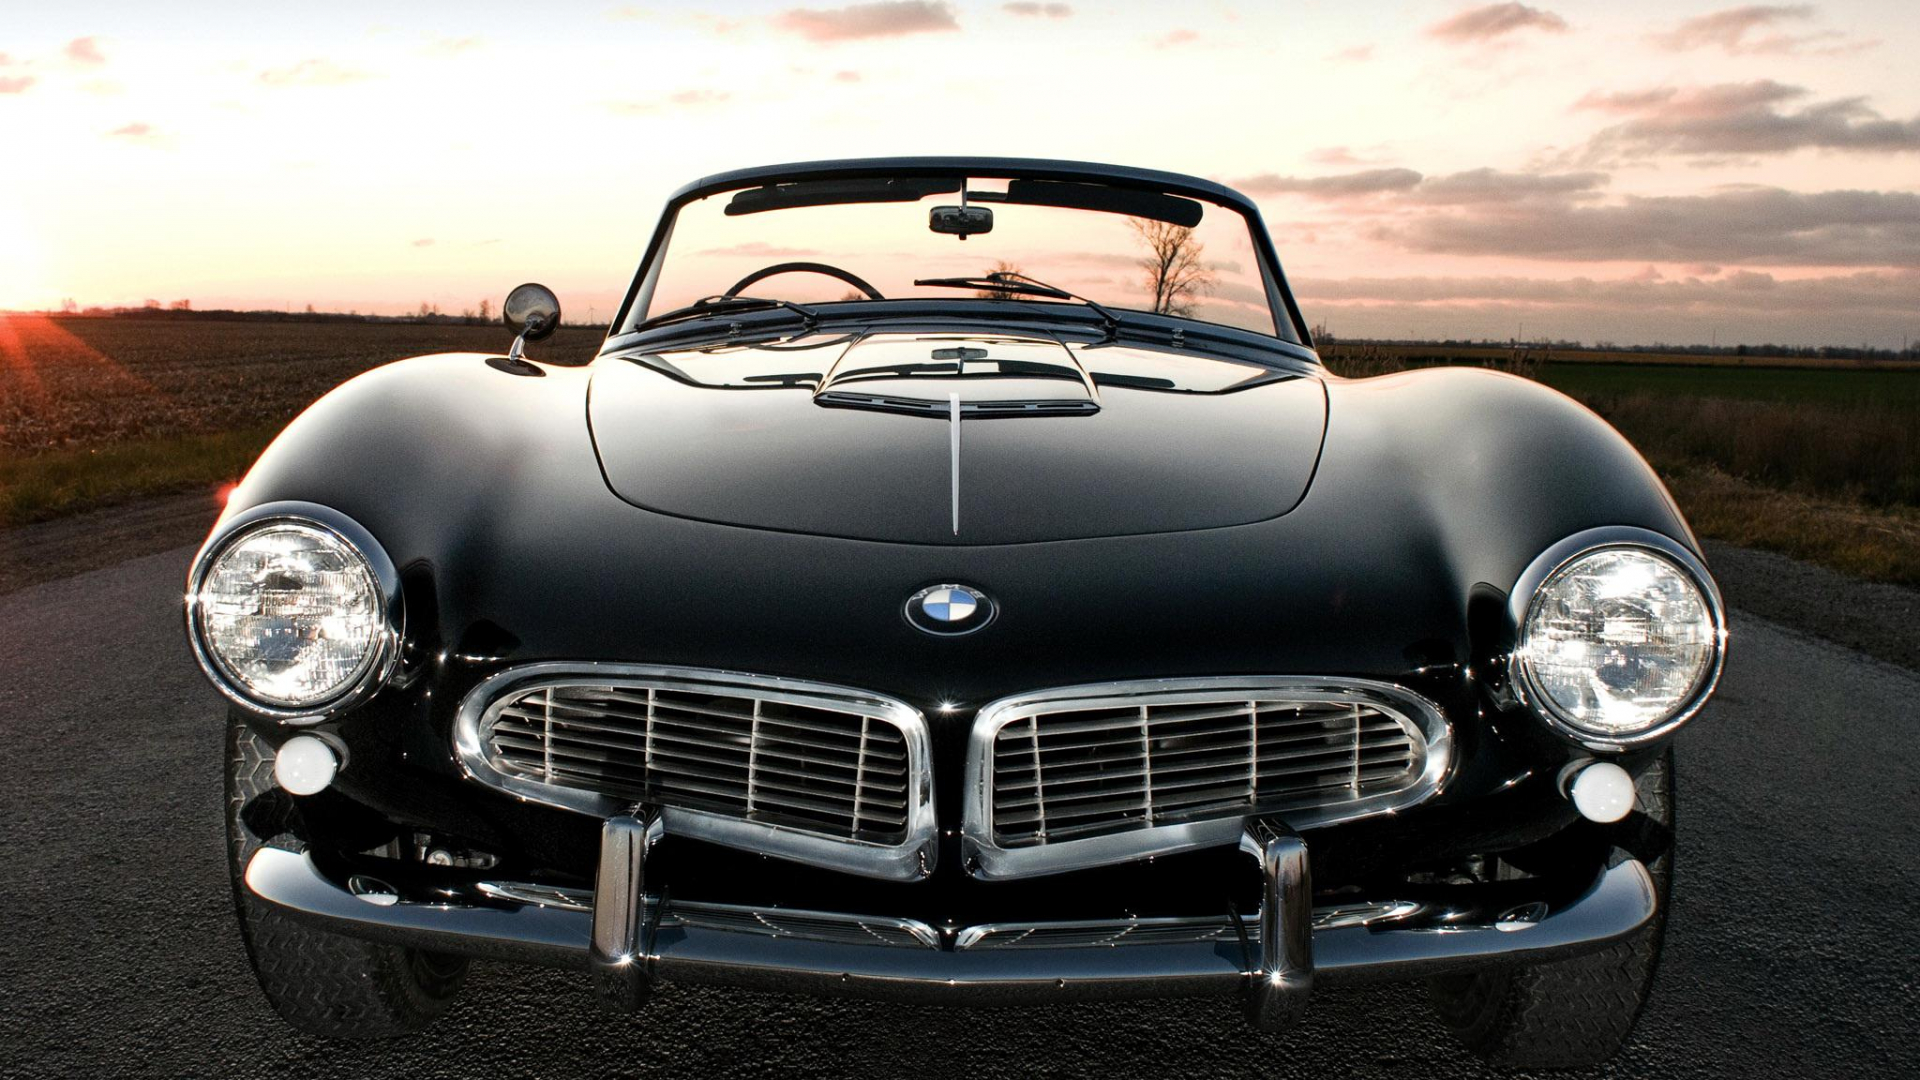 Free Download Bmw Convertible Old Classic Cars Bmw 507 Wallpapers 2048x1536 For Your Desktop Mobile Tablet Explore 95 Old Bmw Wallpapers Old Bmw Wallpapers Bmw Wallpaper Bmw Wallpapers